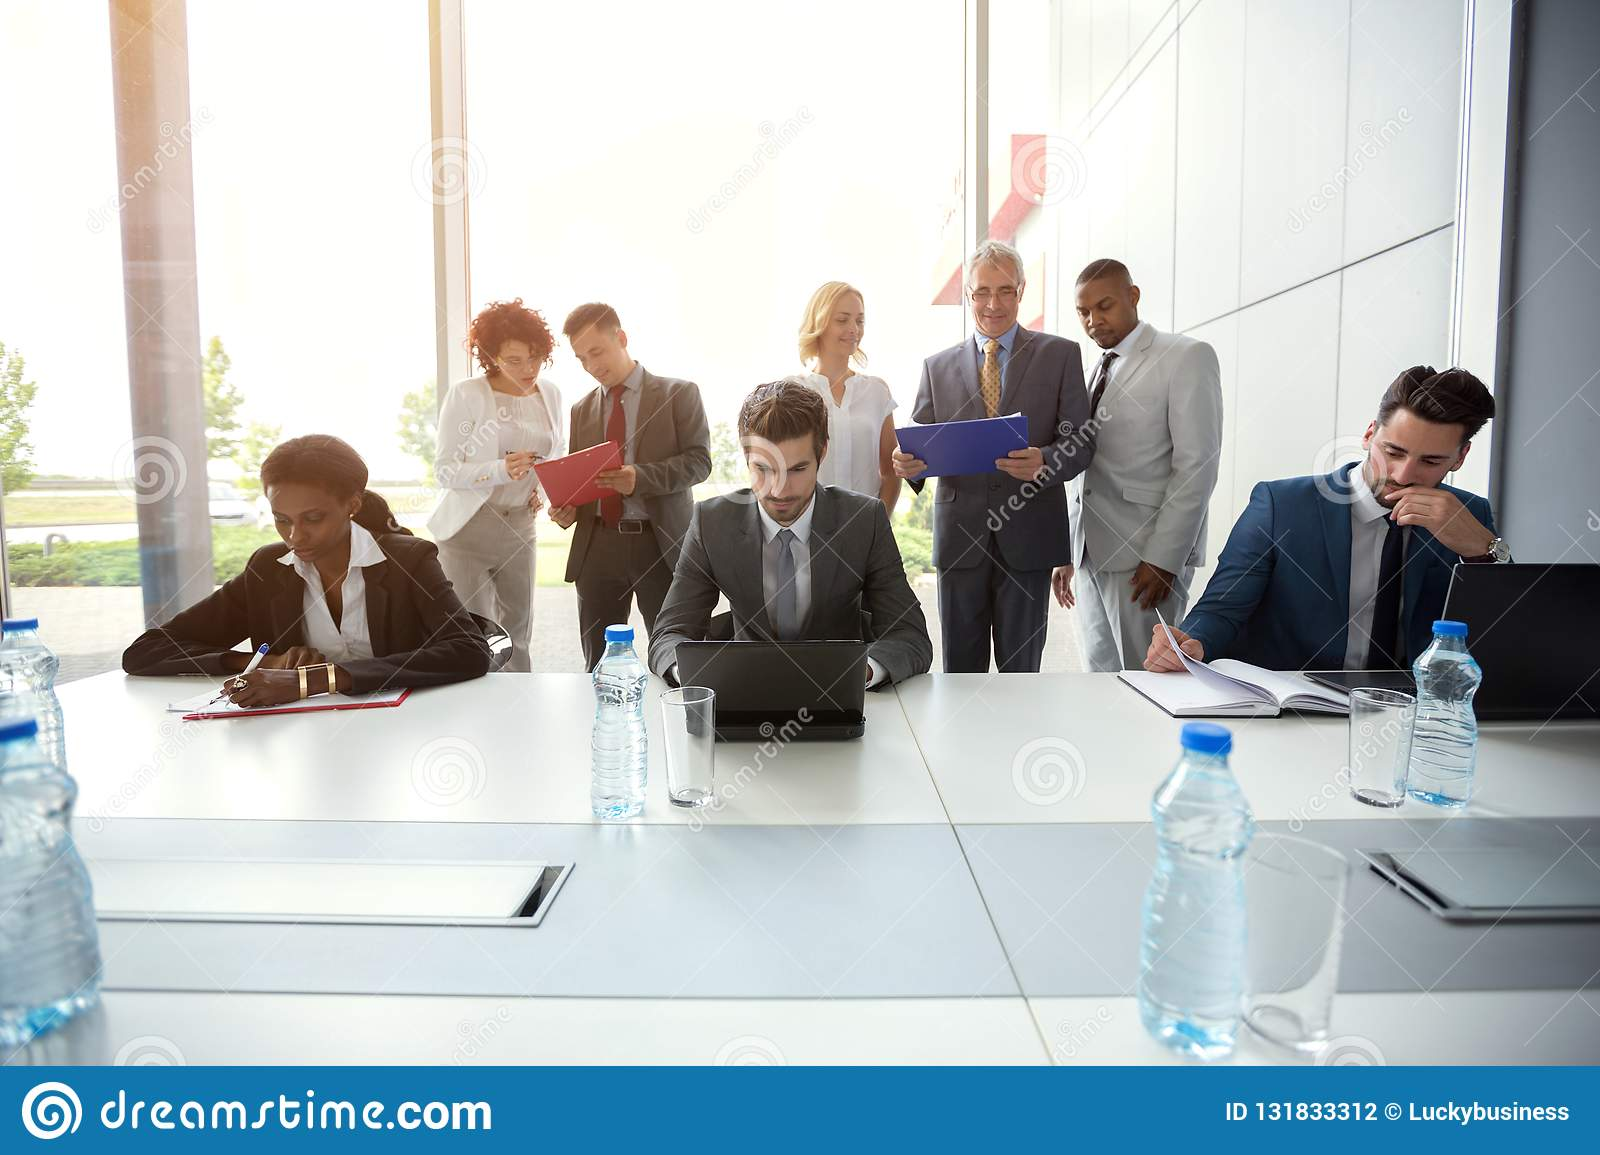 Business people analyzing management